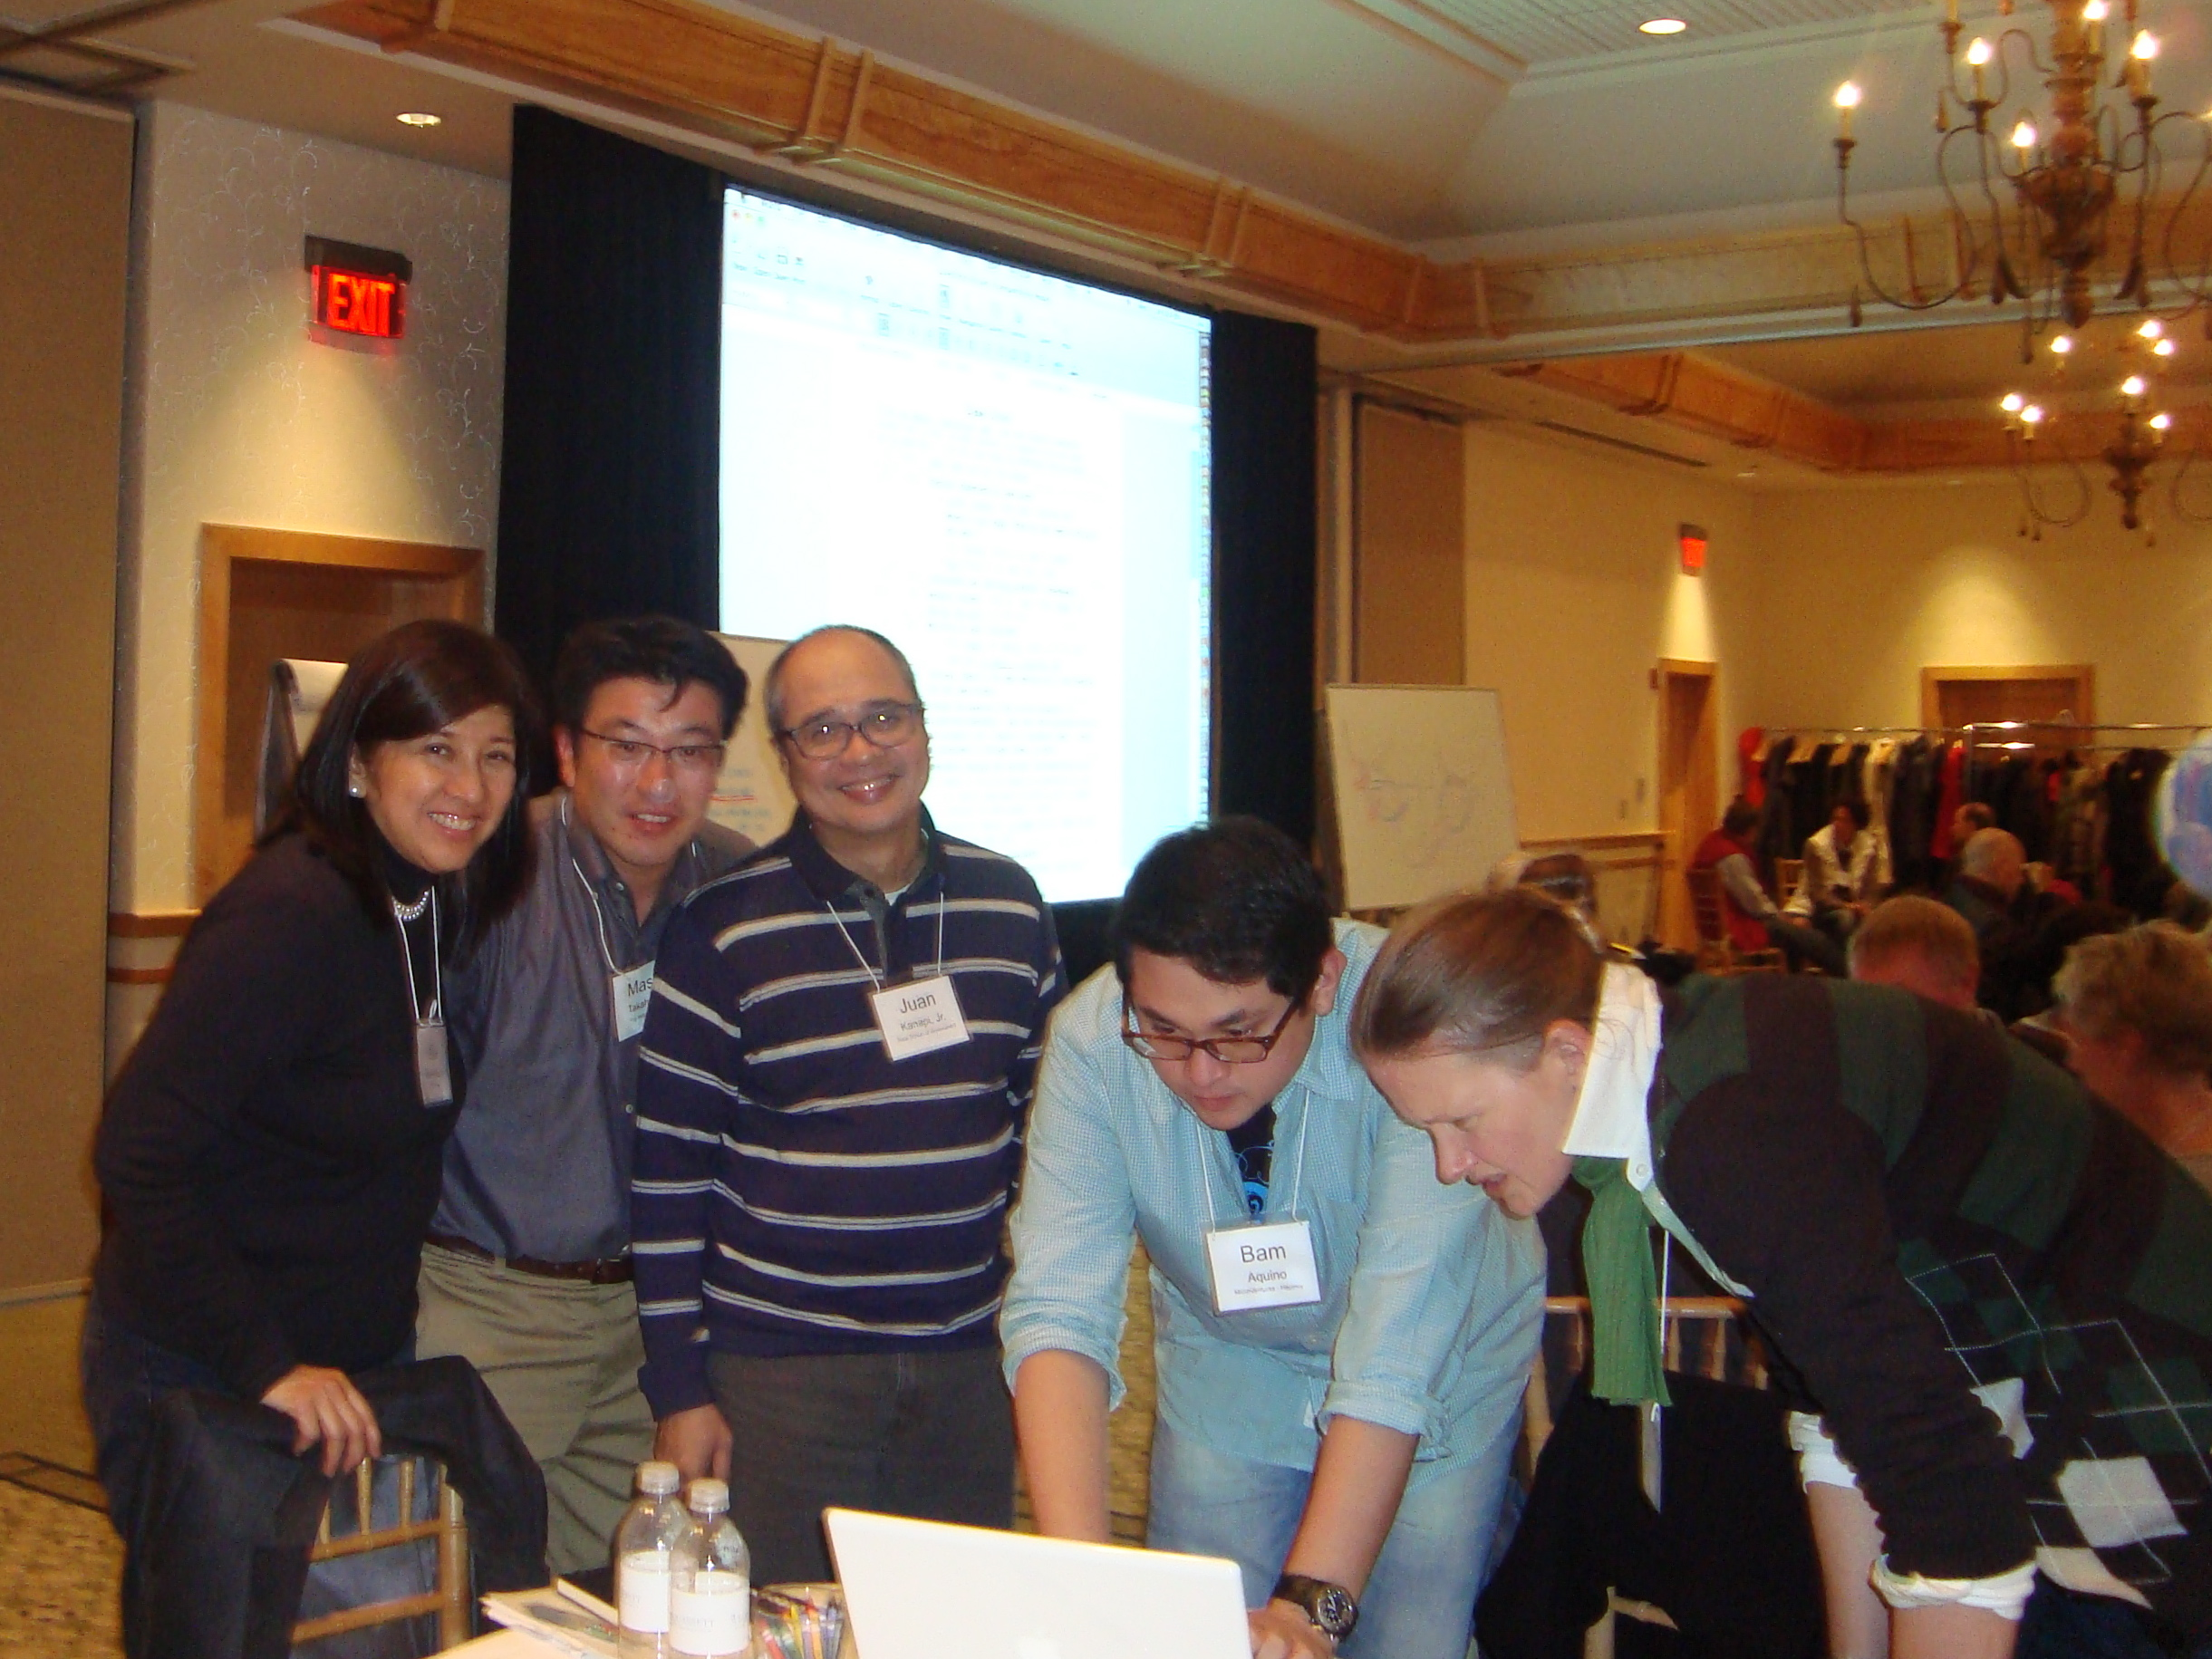 2010</br>ELIAS Philippines </br>Fellows Program, Team 1 <br> October 1, 2010 to June 30, 2011